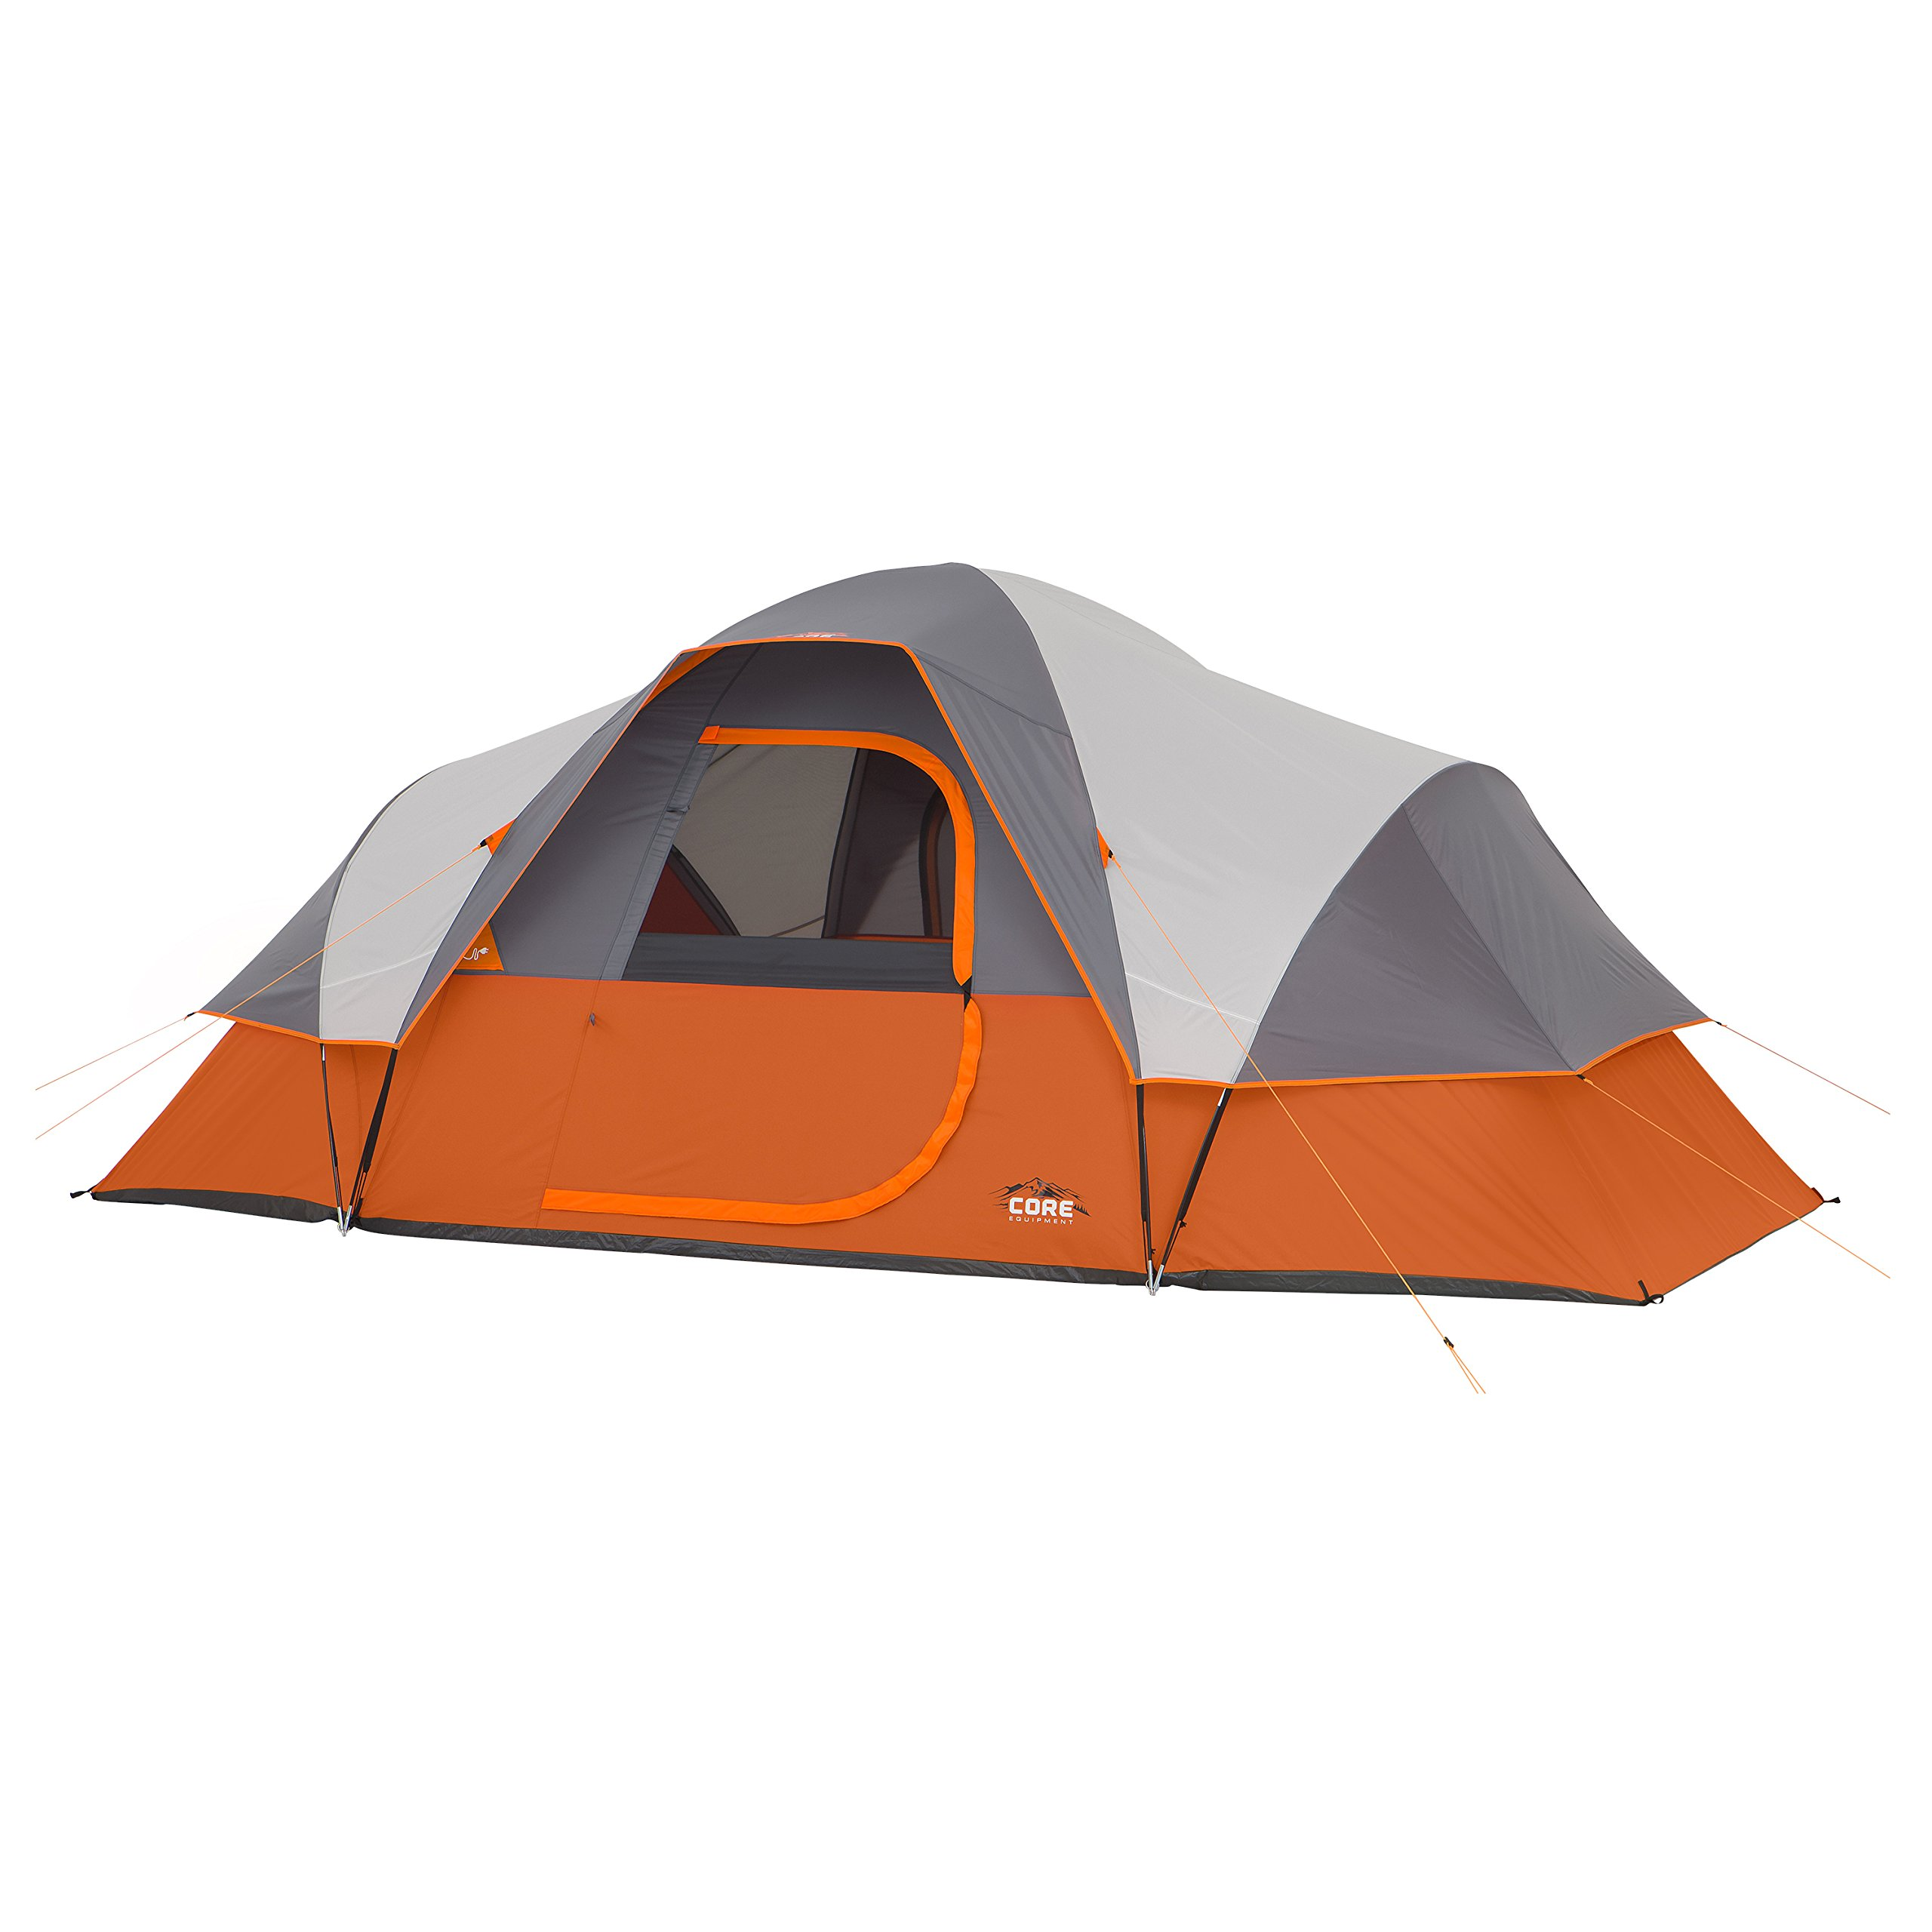 CORE 9 Person Extended Dome Tent - 16' x 9' by CORE (Image #1)